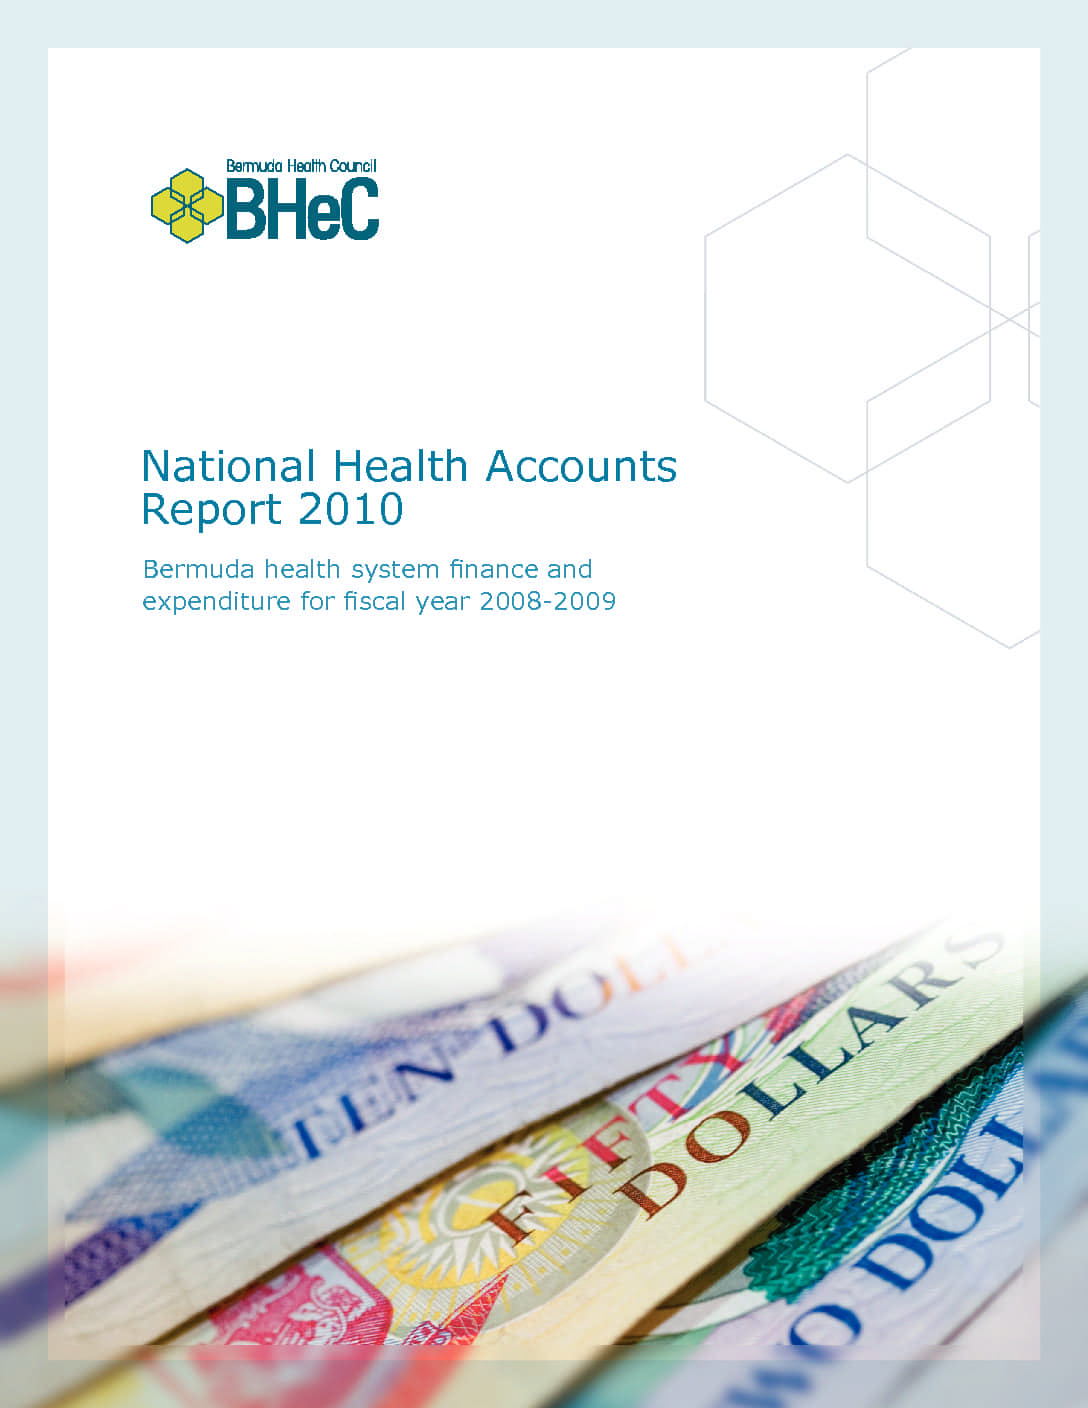 2010 National Health Accounts